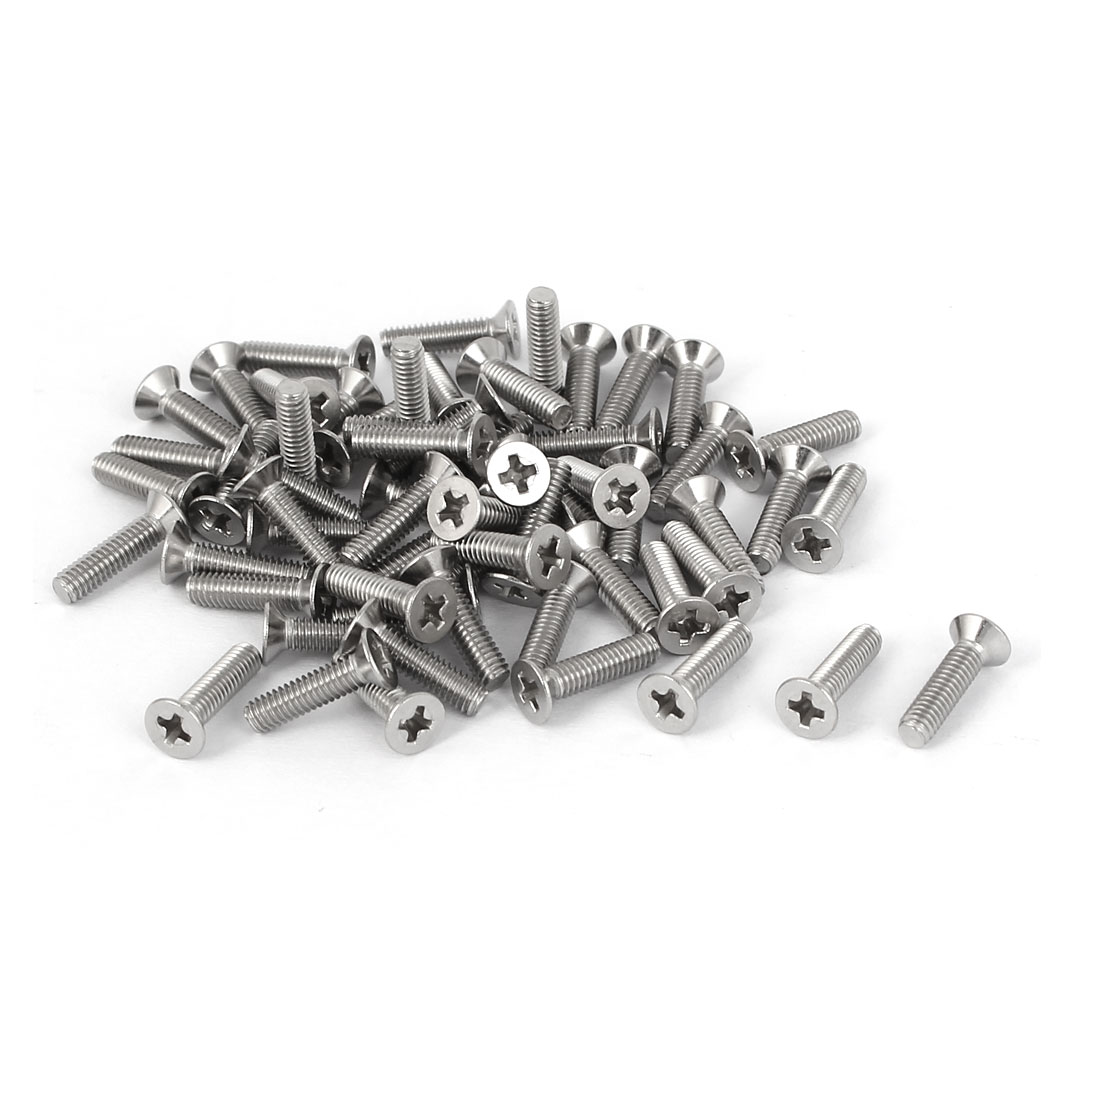 60 Pcs M2.5x10mm 316 Stainless Steel Countersunk Phillips Machine Screws Bolts